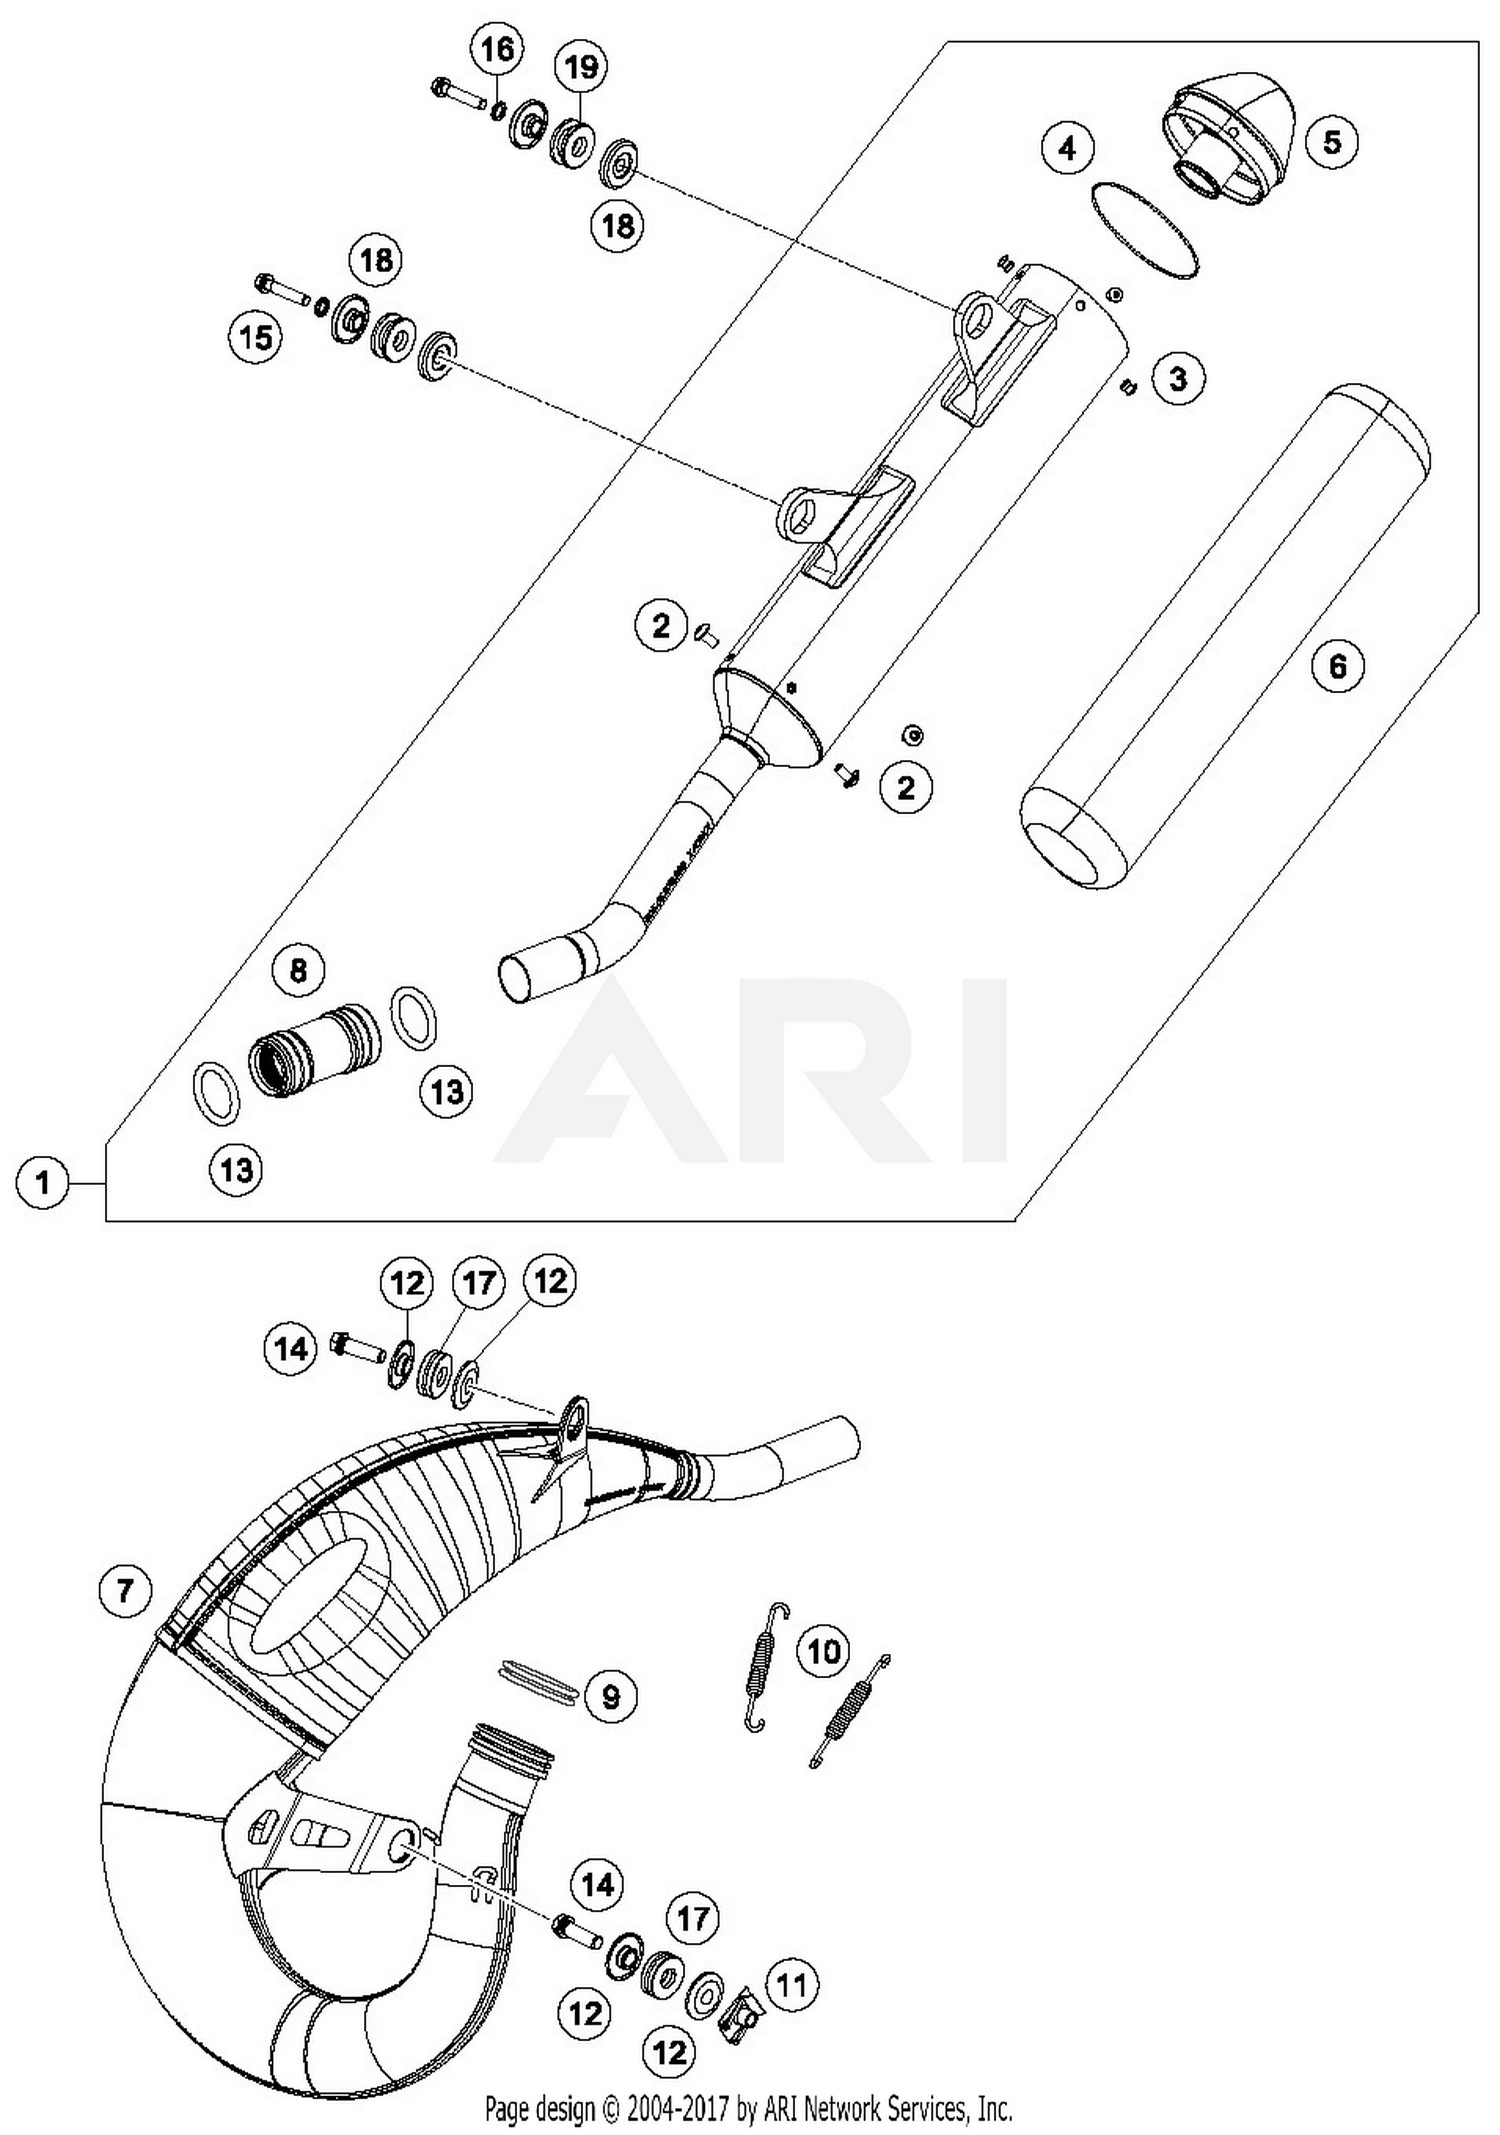 Exhaust System Parts Diagram 2019 Ktm 125 Sx Exhaust System 3 Oem Parts Of Exhaust System Parts Diagram Chev Gmc